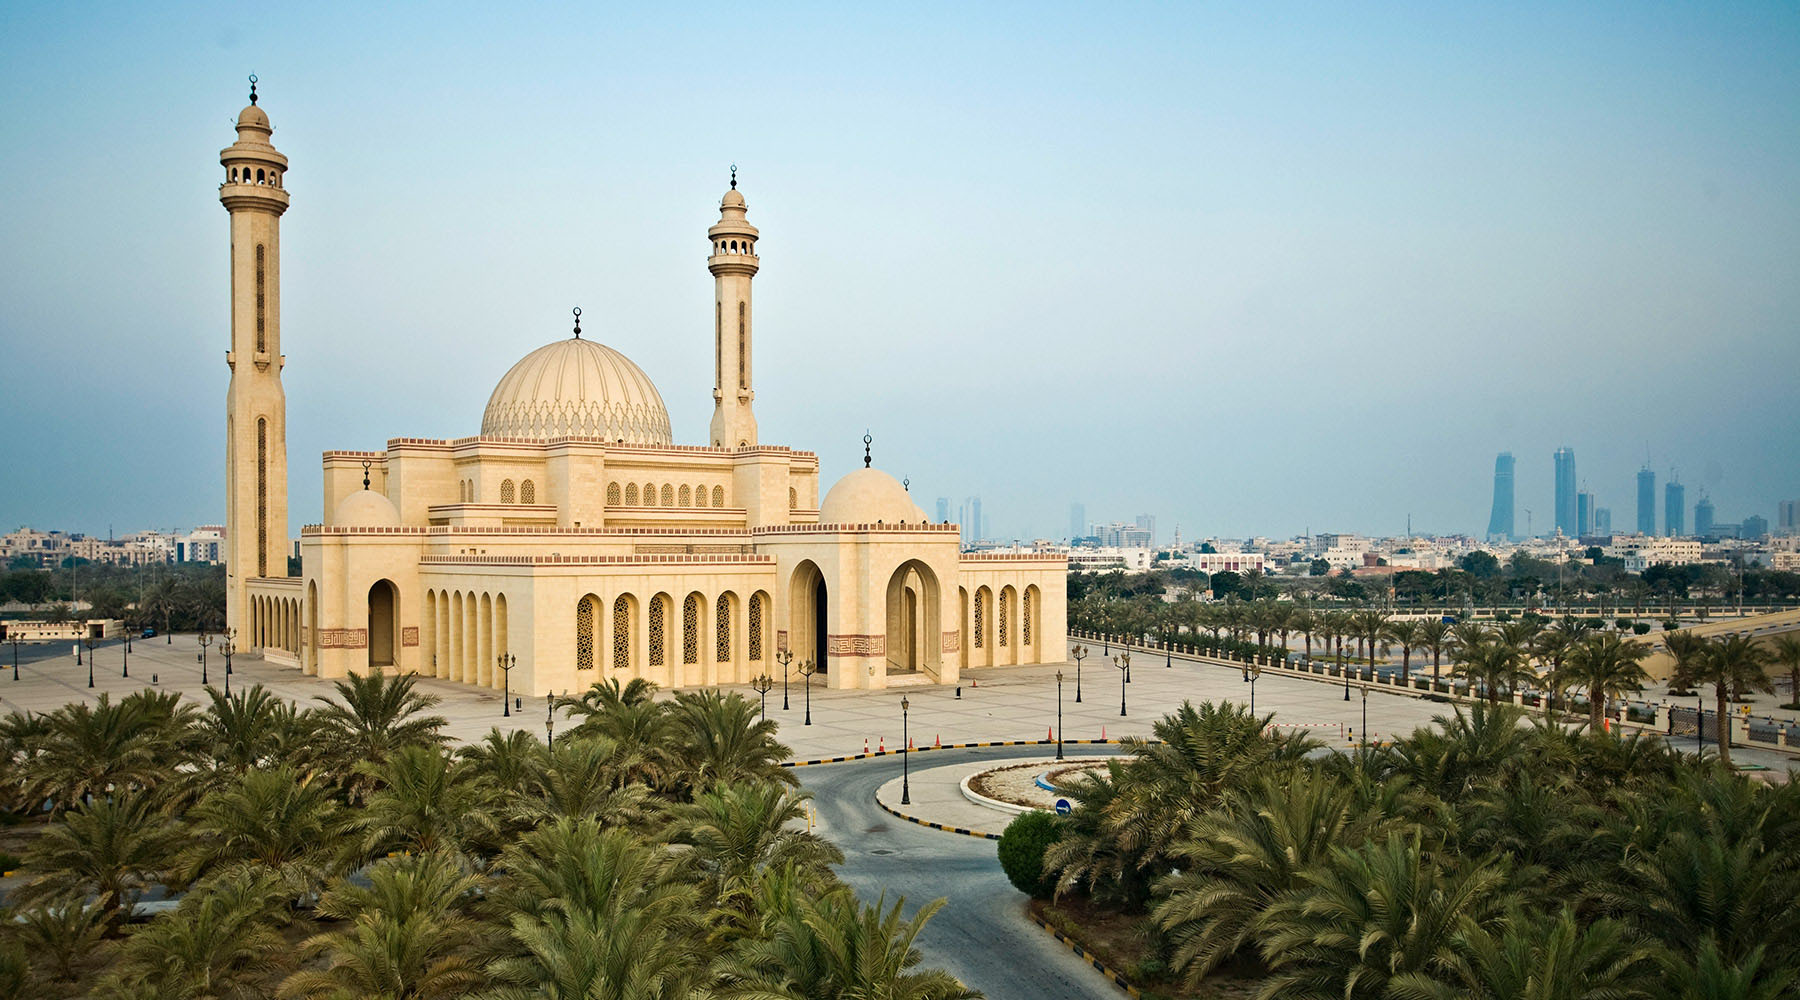 10 NIGHT ARABIAN GULF & EMIRATES VOYAGE